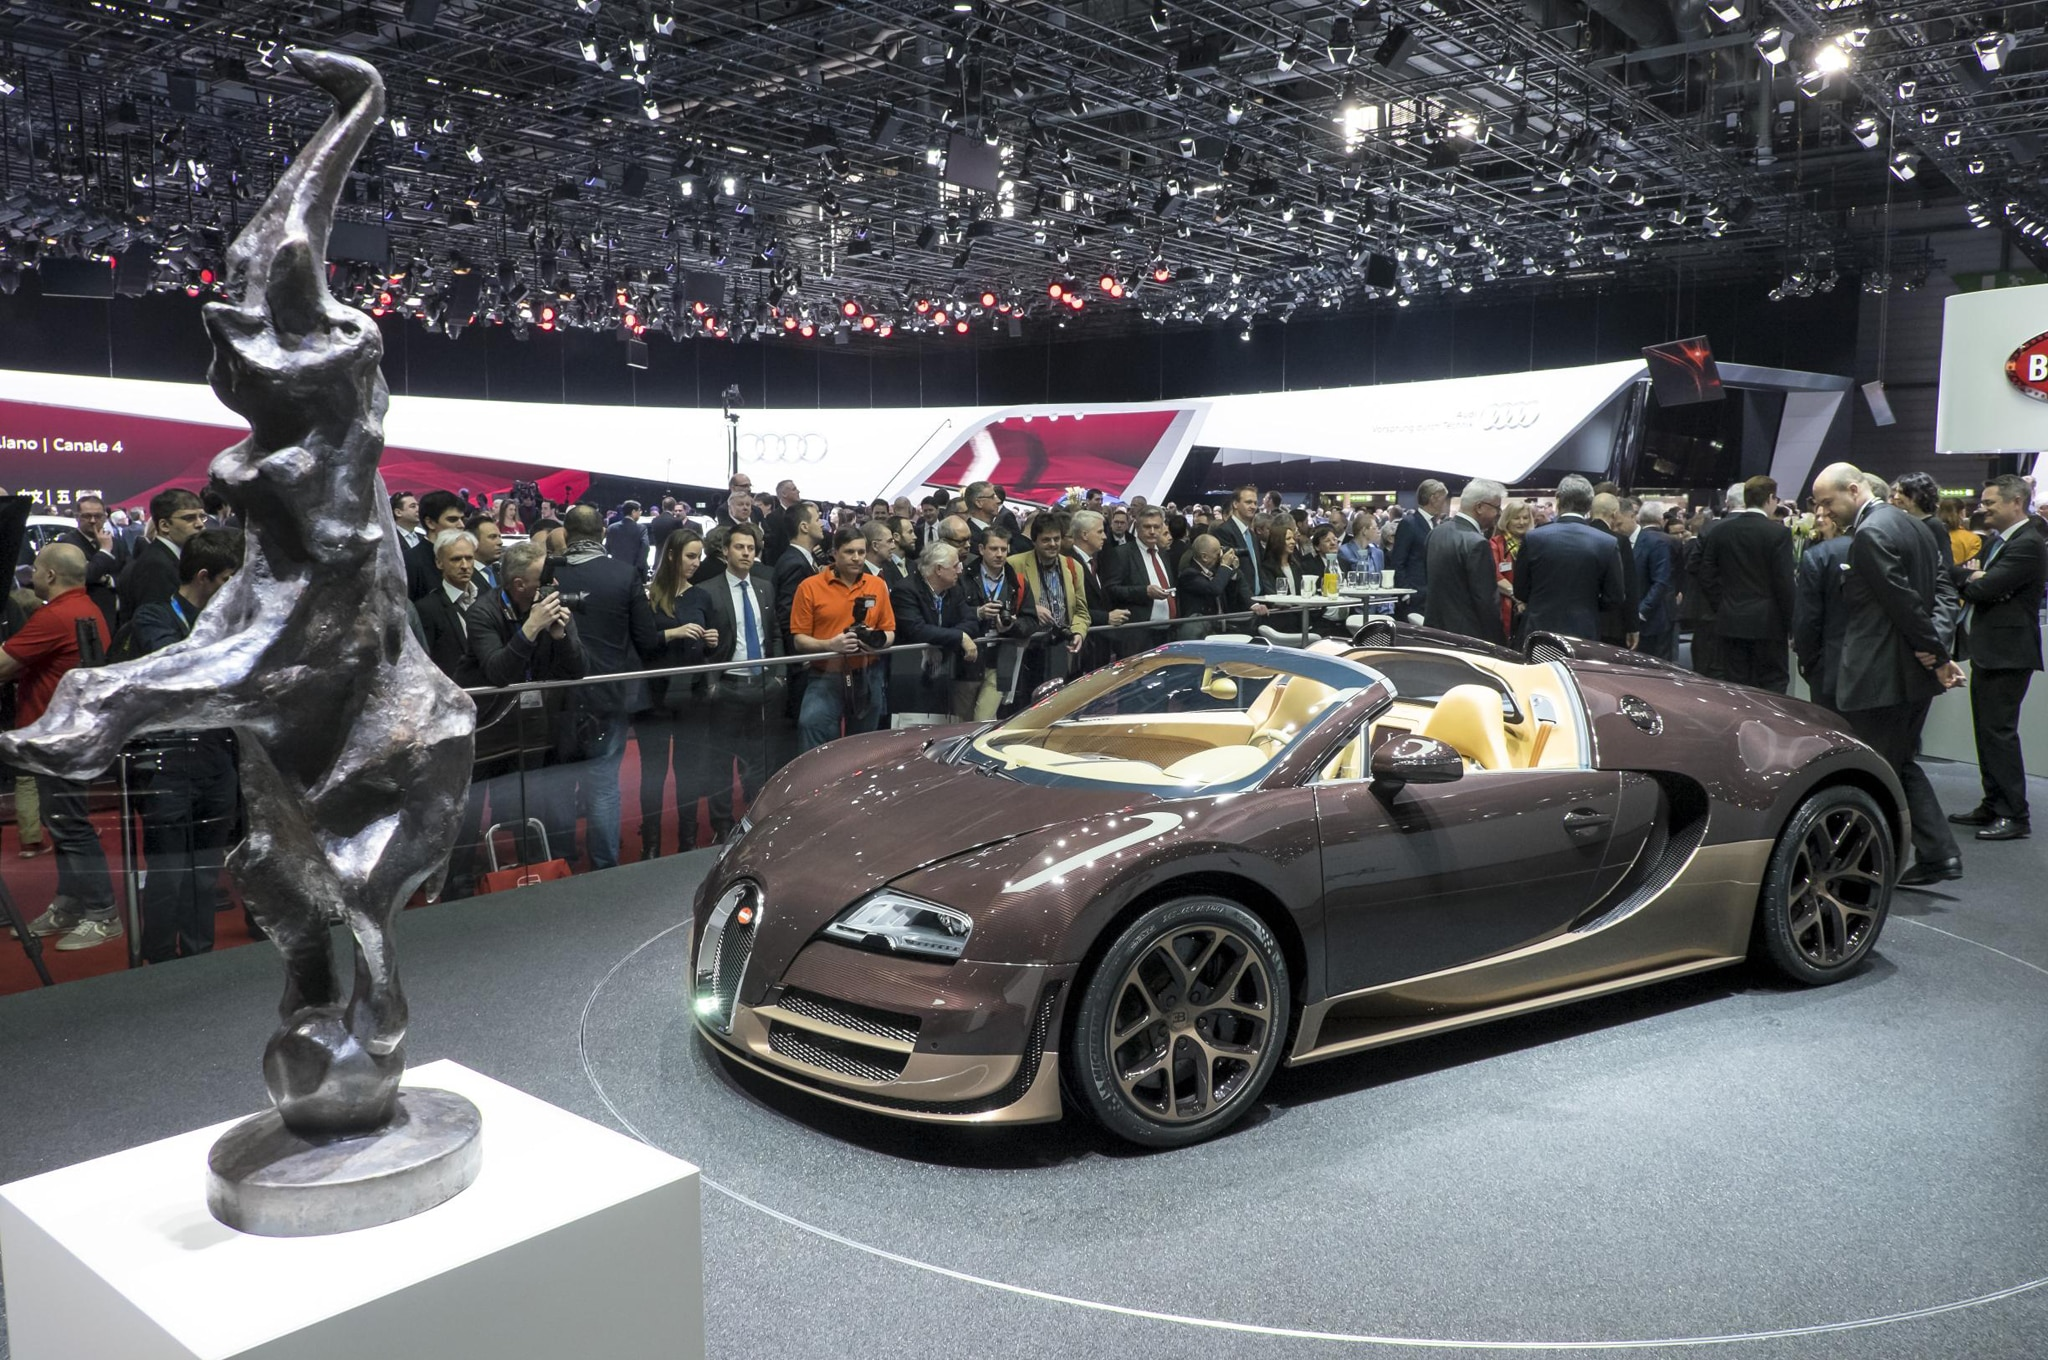 Bugatti-Veyron-Grand-Sport-Vitesse-Legends-Rembrandt-side Cozy Bugatti Veyron Rembrandt Edition Price Cars Trend